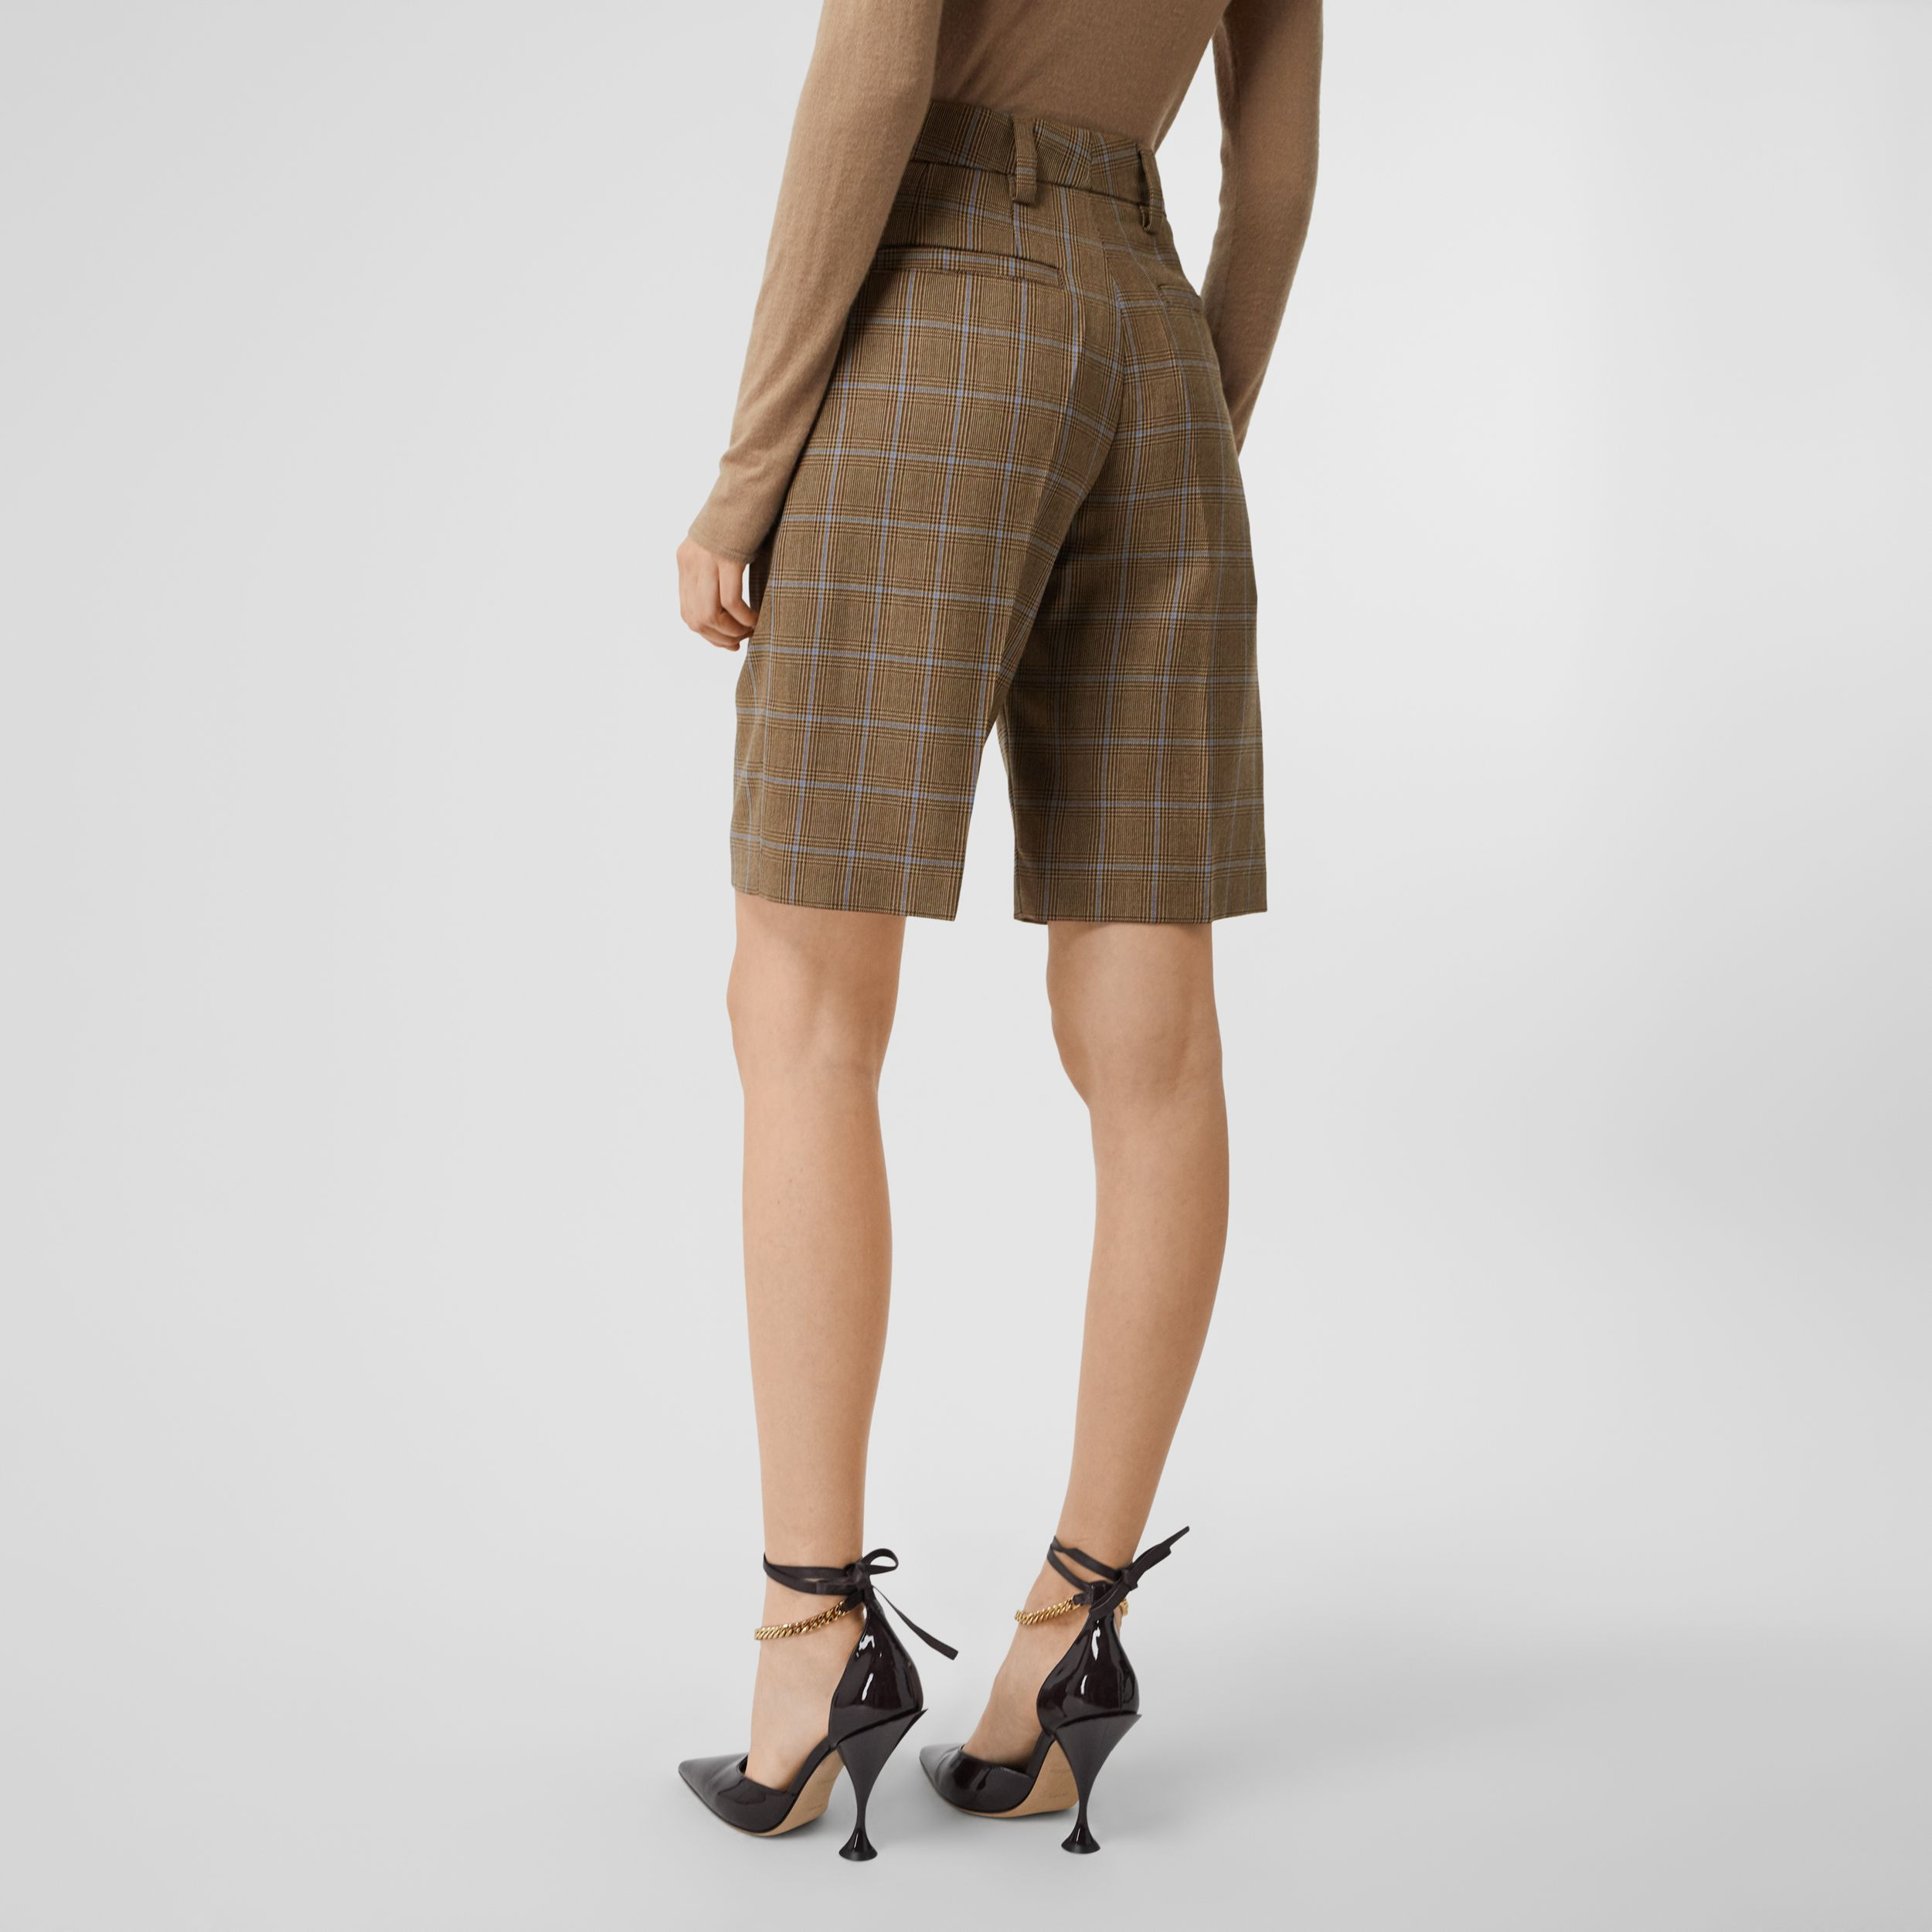 Pocket Detail Prince of Wales Check Wool Shorts in Birch Brown - Women | Burberry - 3